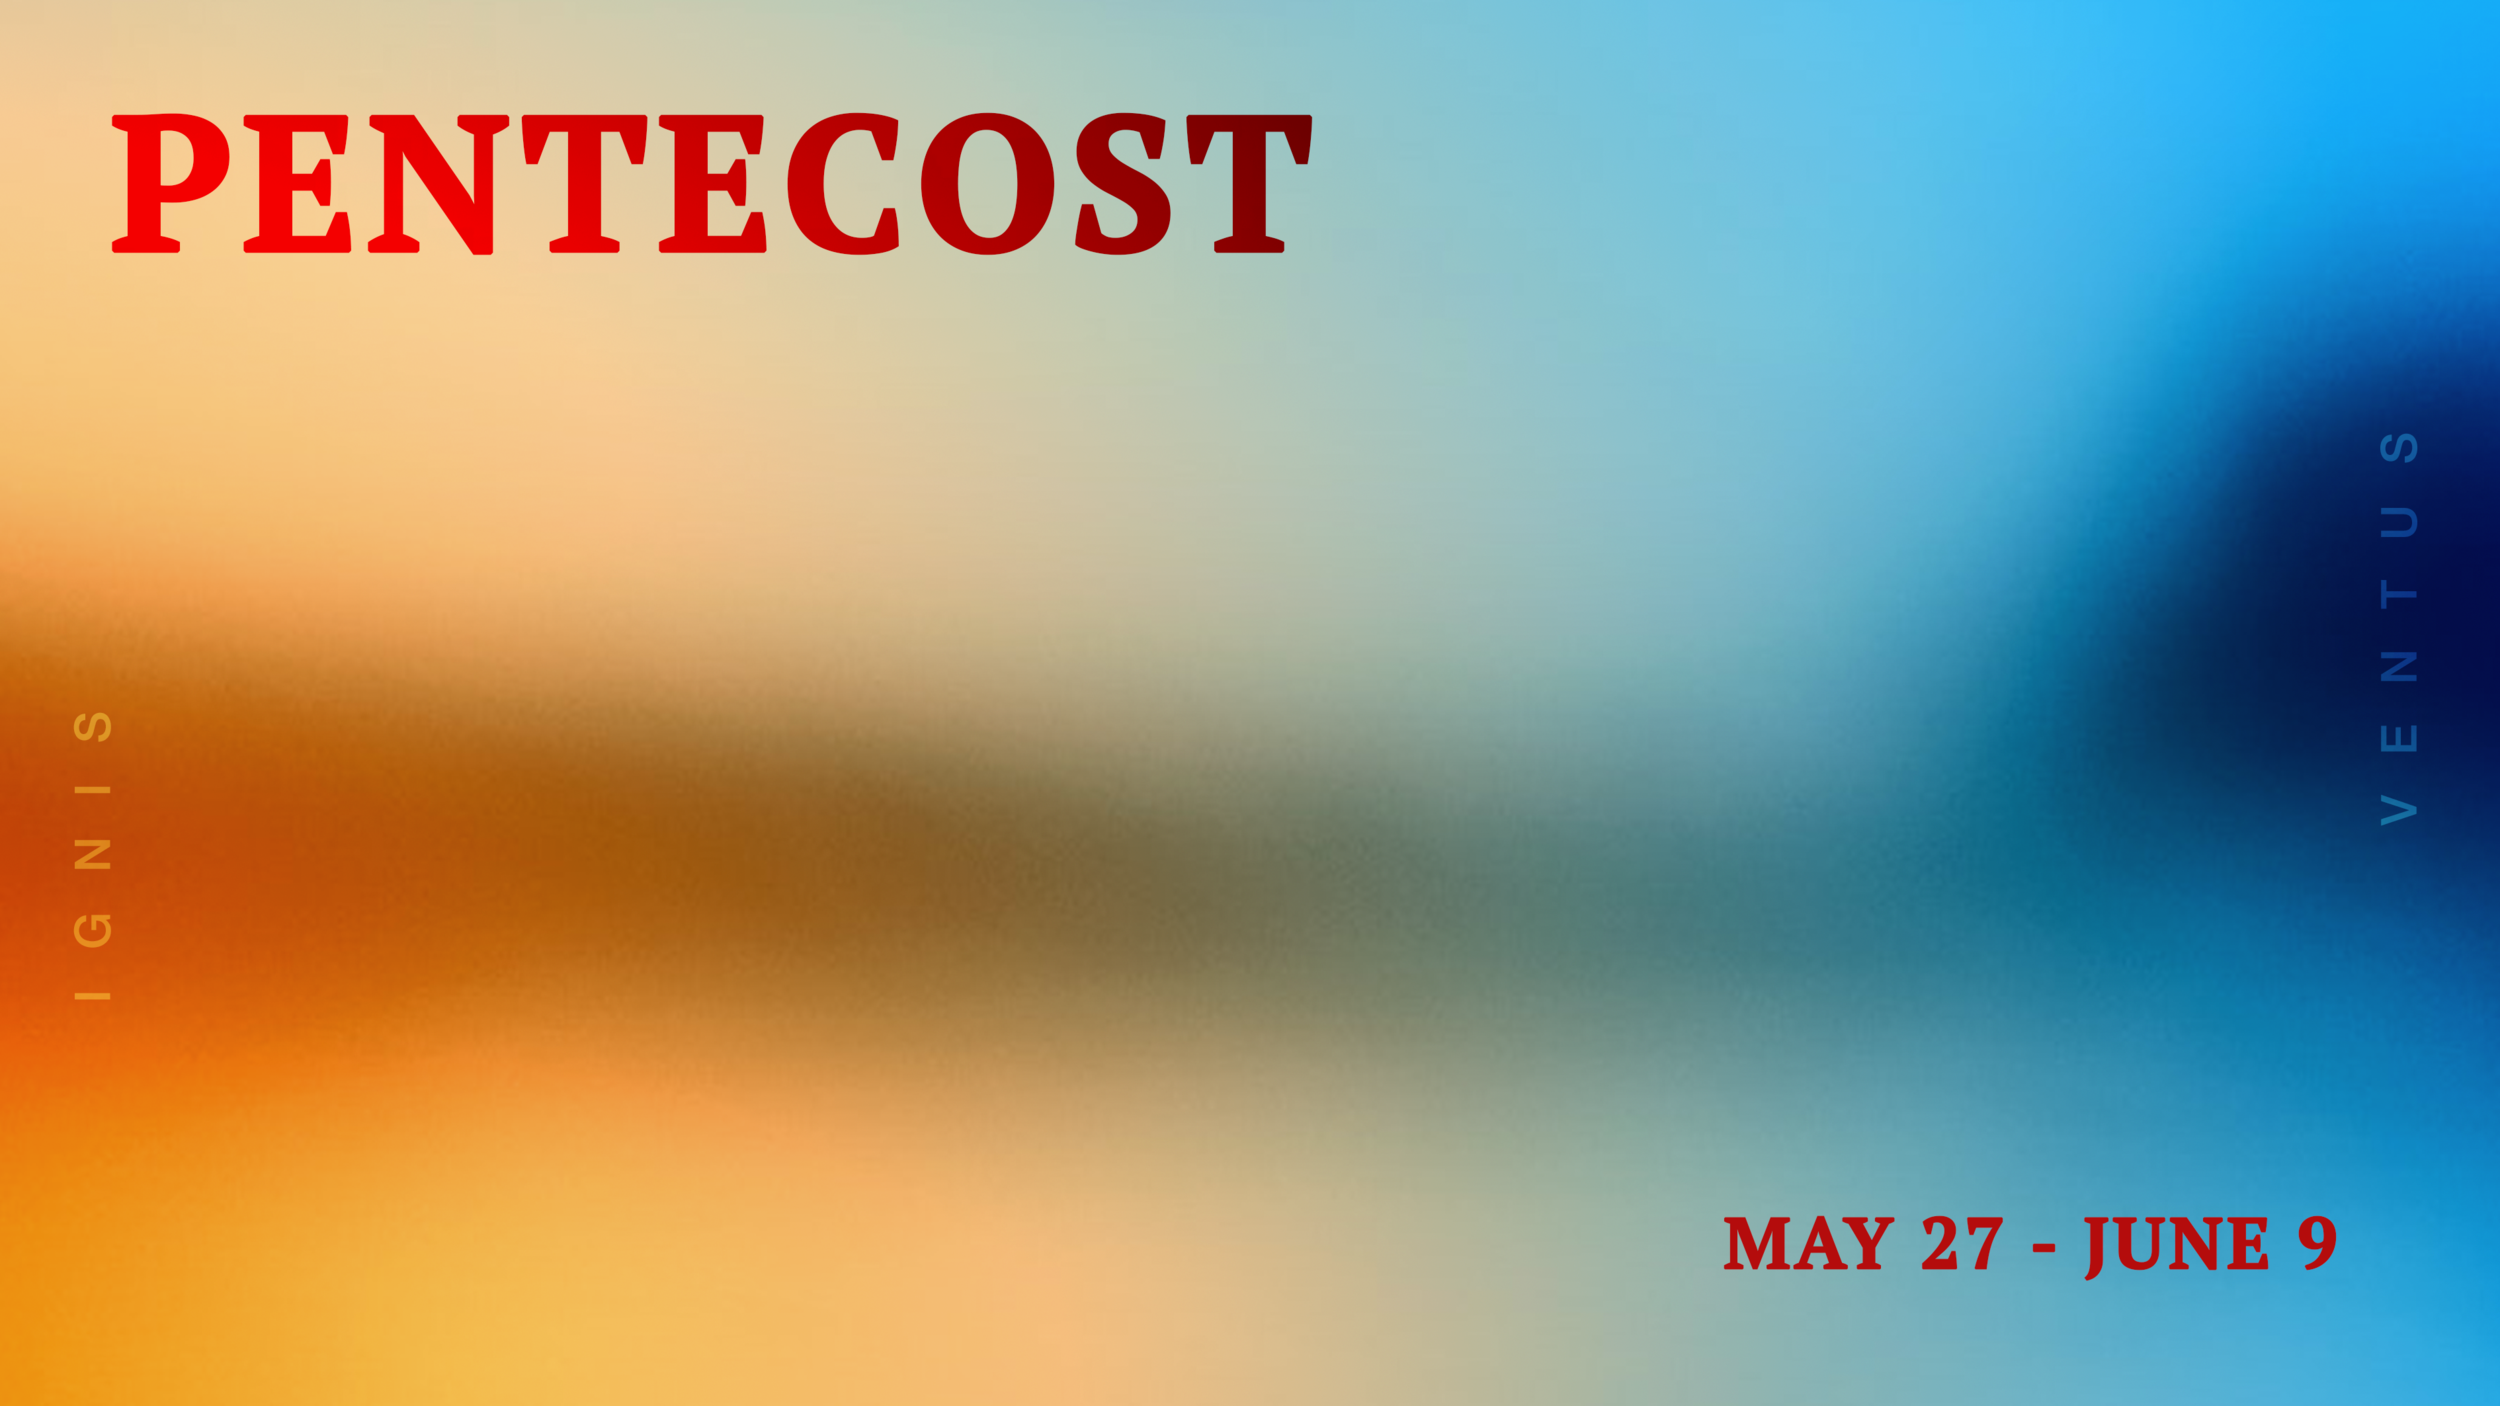 Pentecost Dates.png